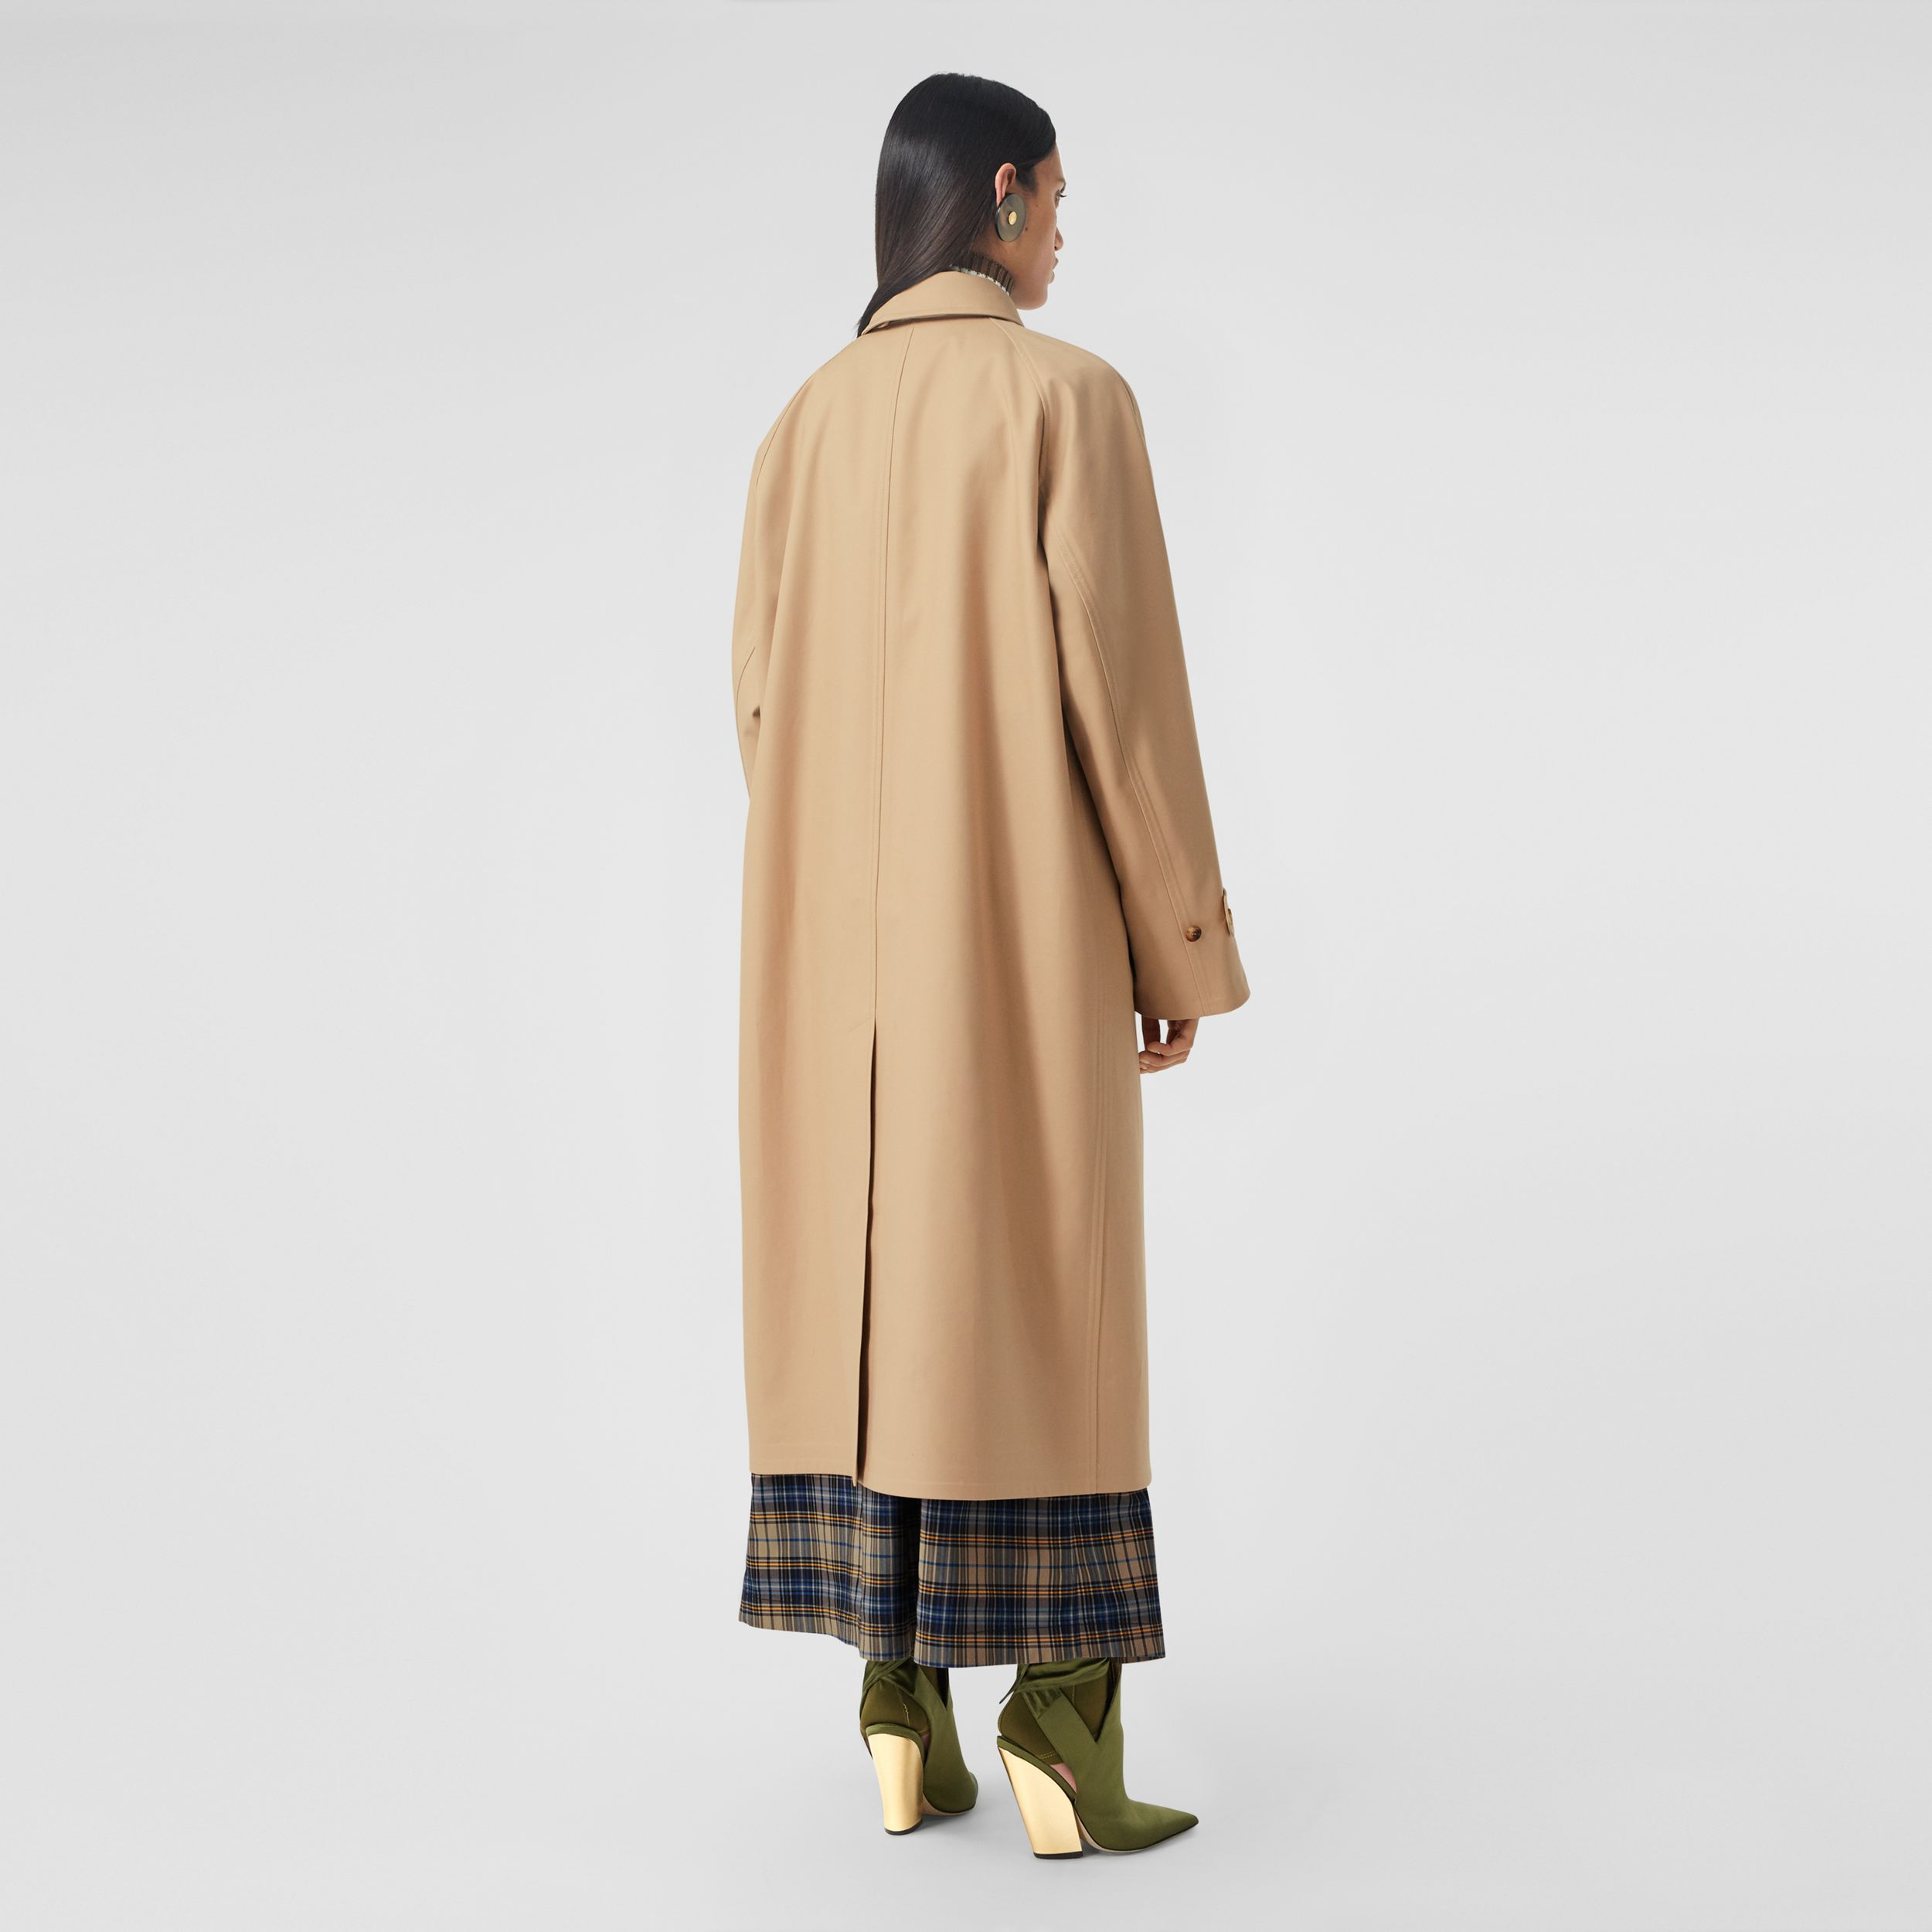 Cotton Gabardine Reconstructed Car Coat in Soft Fawn - Women | Burberry - 3